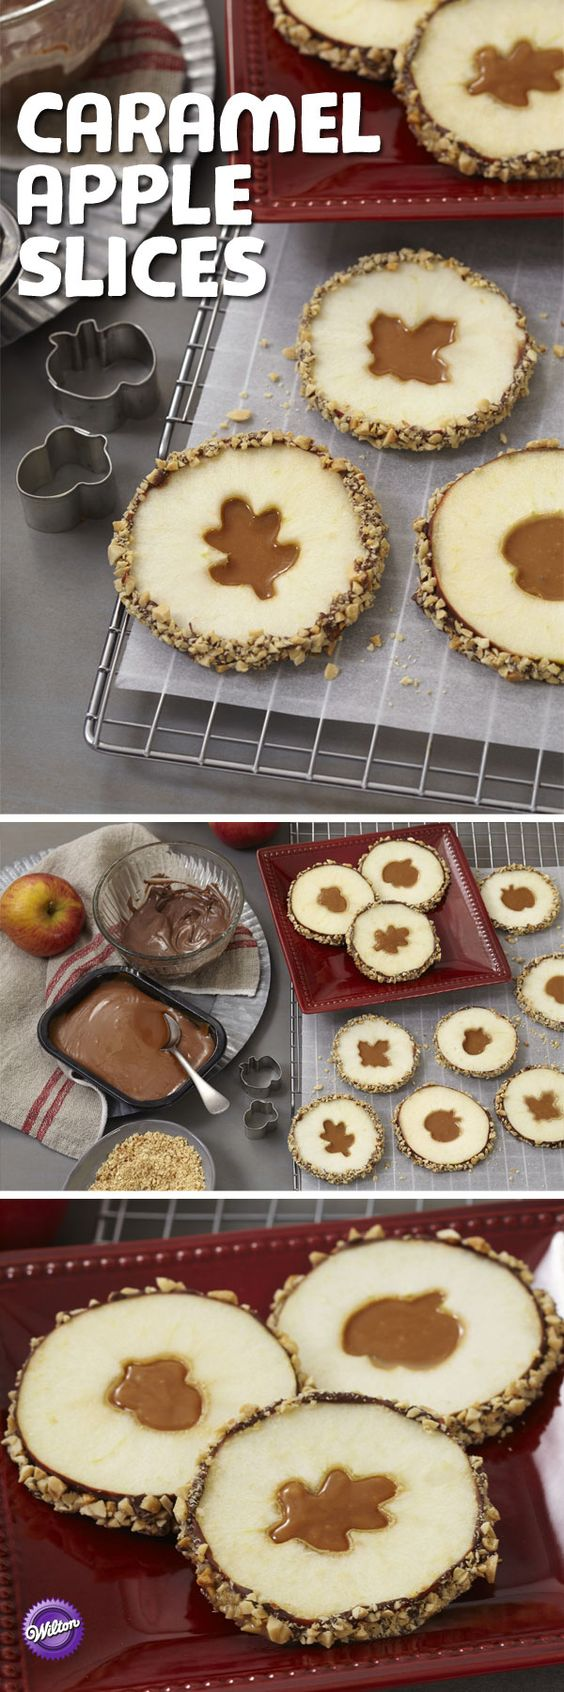 Crisp, fall apple slices get a yummy coat of light cocoa candy with a gooey caramel center. So pretty and perfect for Fall and Winter! Caramel Apple Slices with Cutouts Recipe | Wilton #falldesserts #winterdesserts #christmasdesserts #thanksgivingdesserts #partydesserts #holidaydesserts #carameldesserts #appledesserts